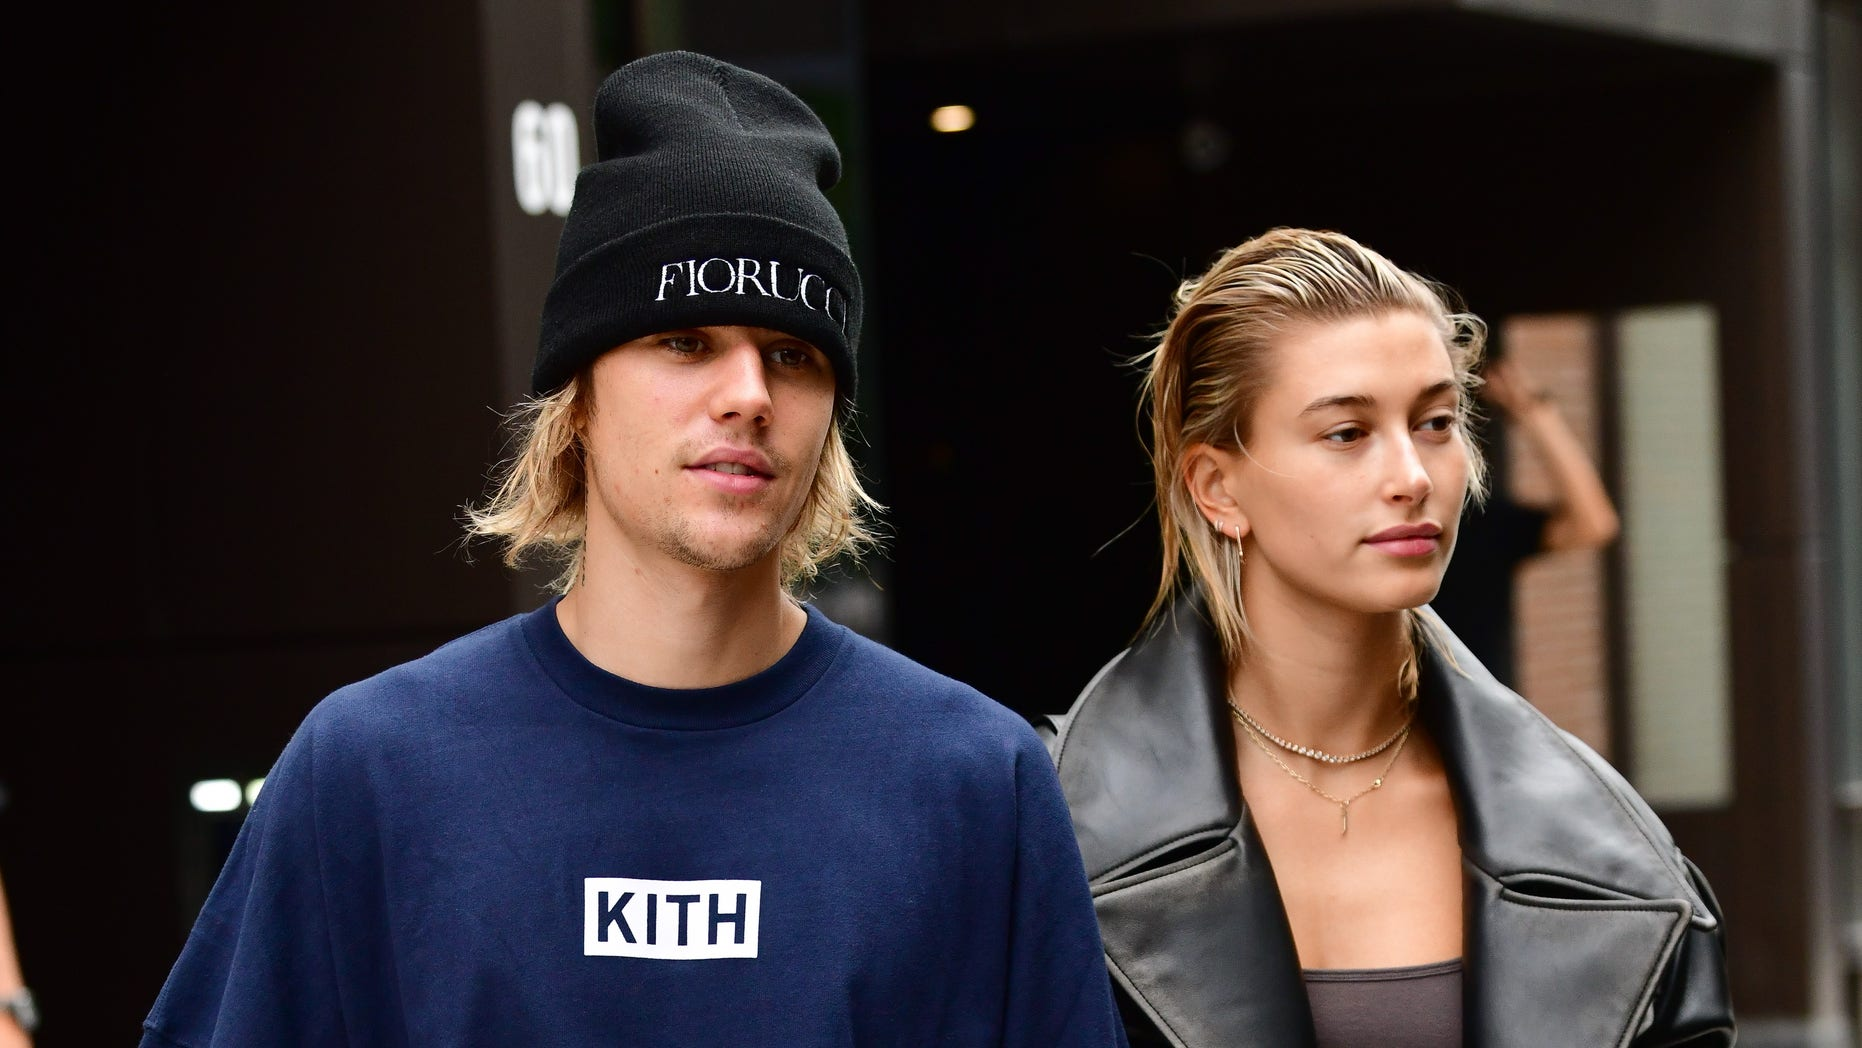 Justin Bieber, Hailey Baldwin open up about relationship issues